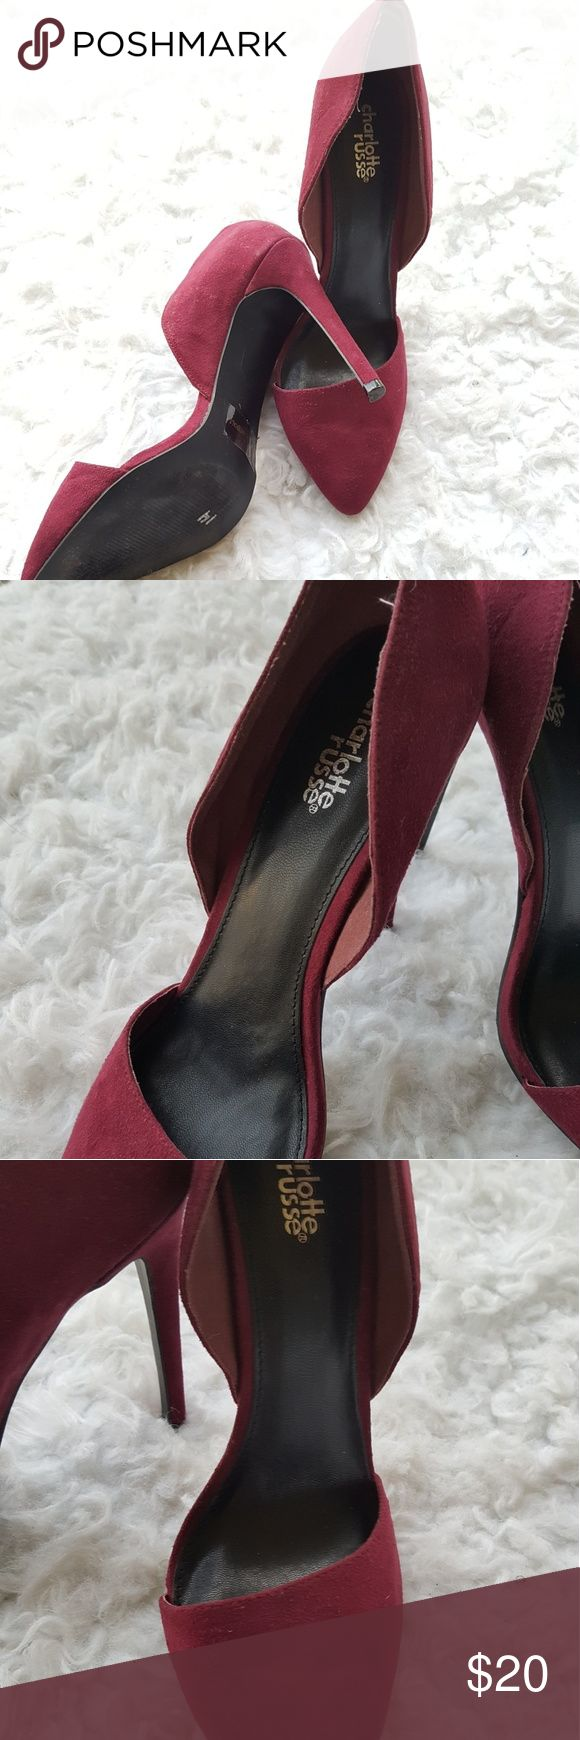 Charlotte Russe Heels Charlotte Russe Heels in great condition. A Maroone /Red Charlotte Russe Shoes Heels